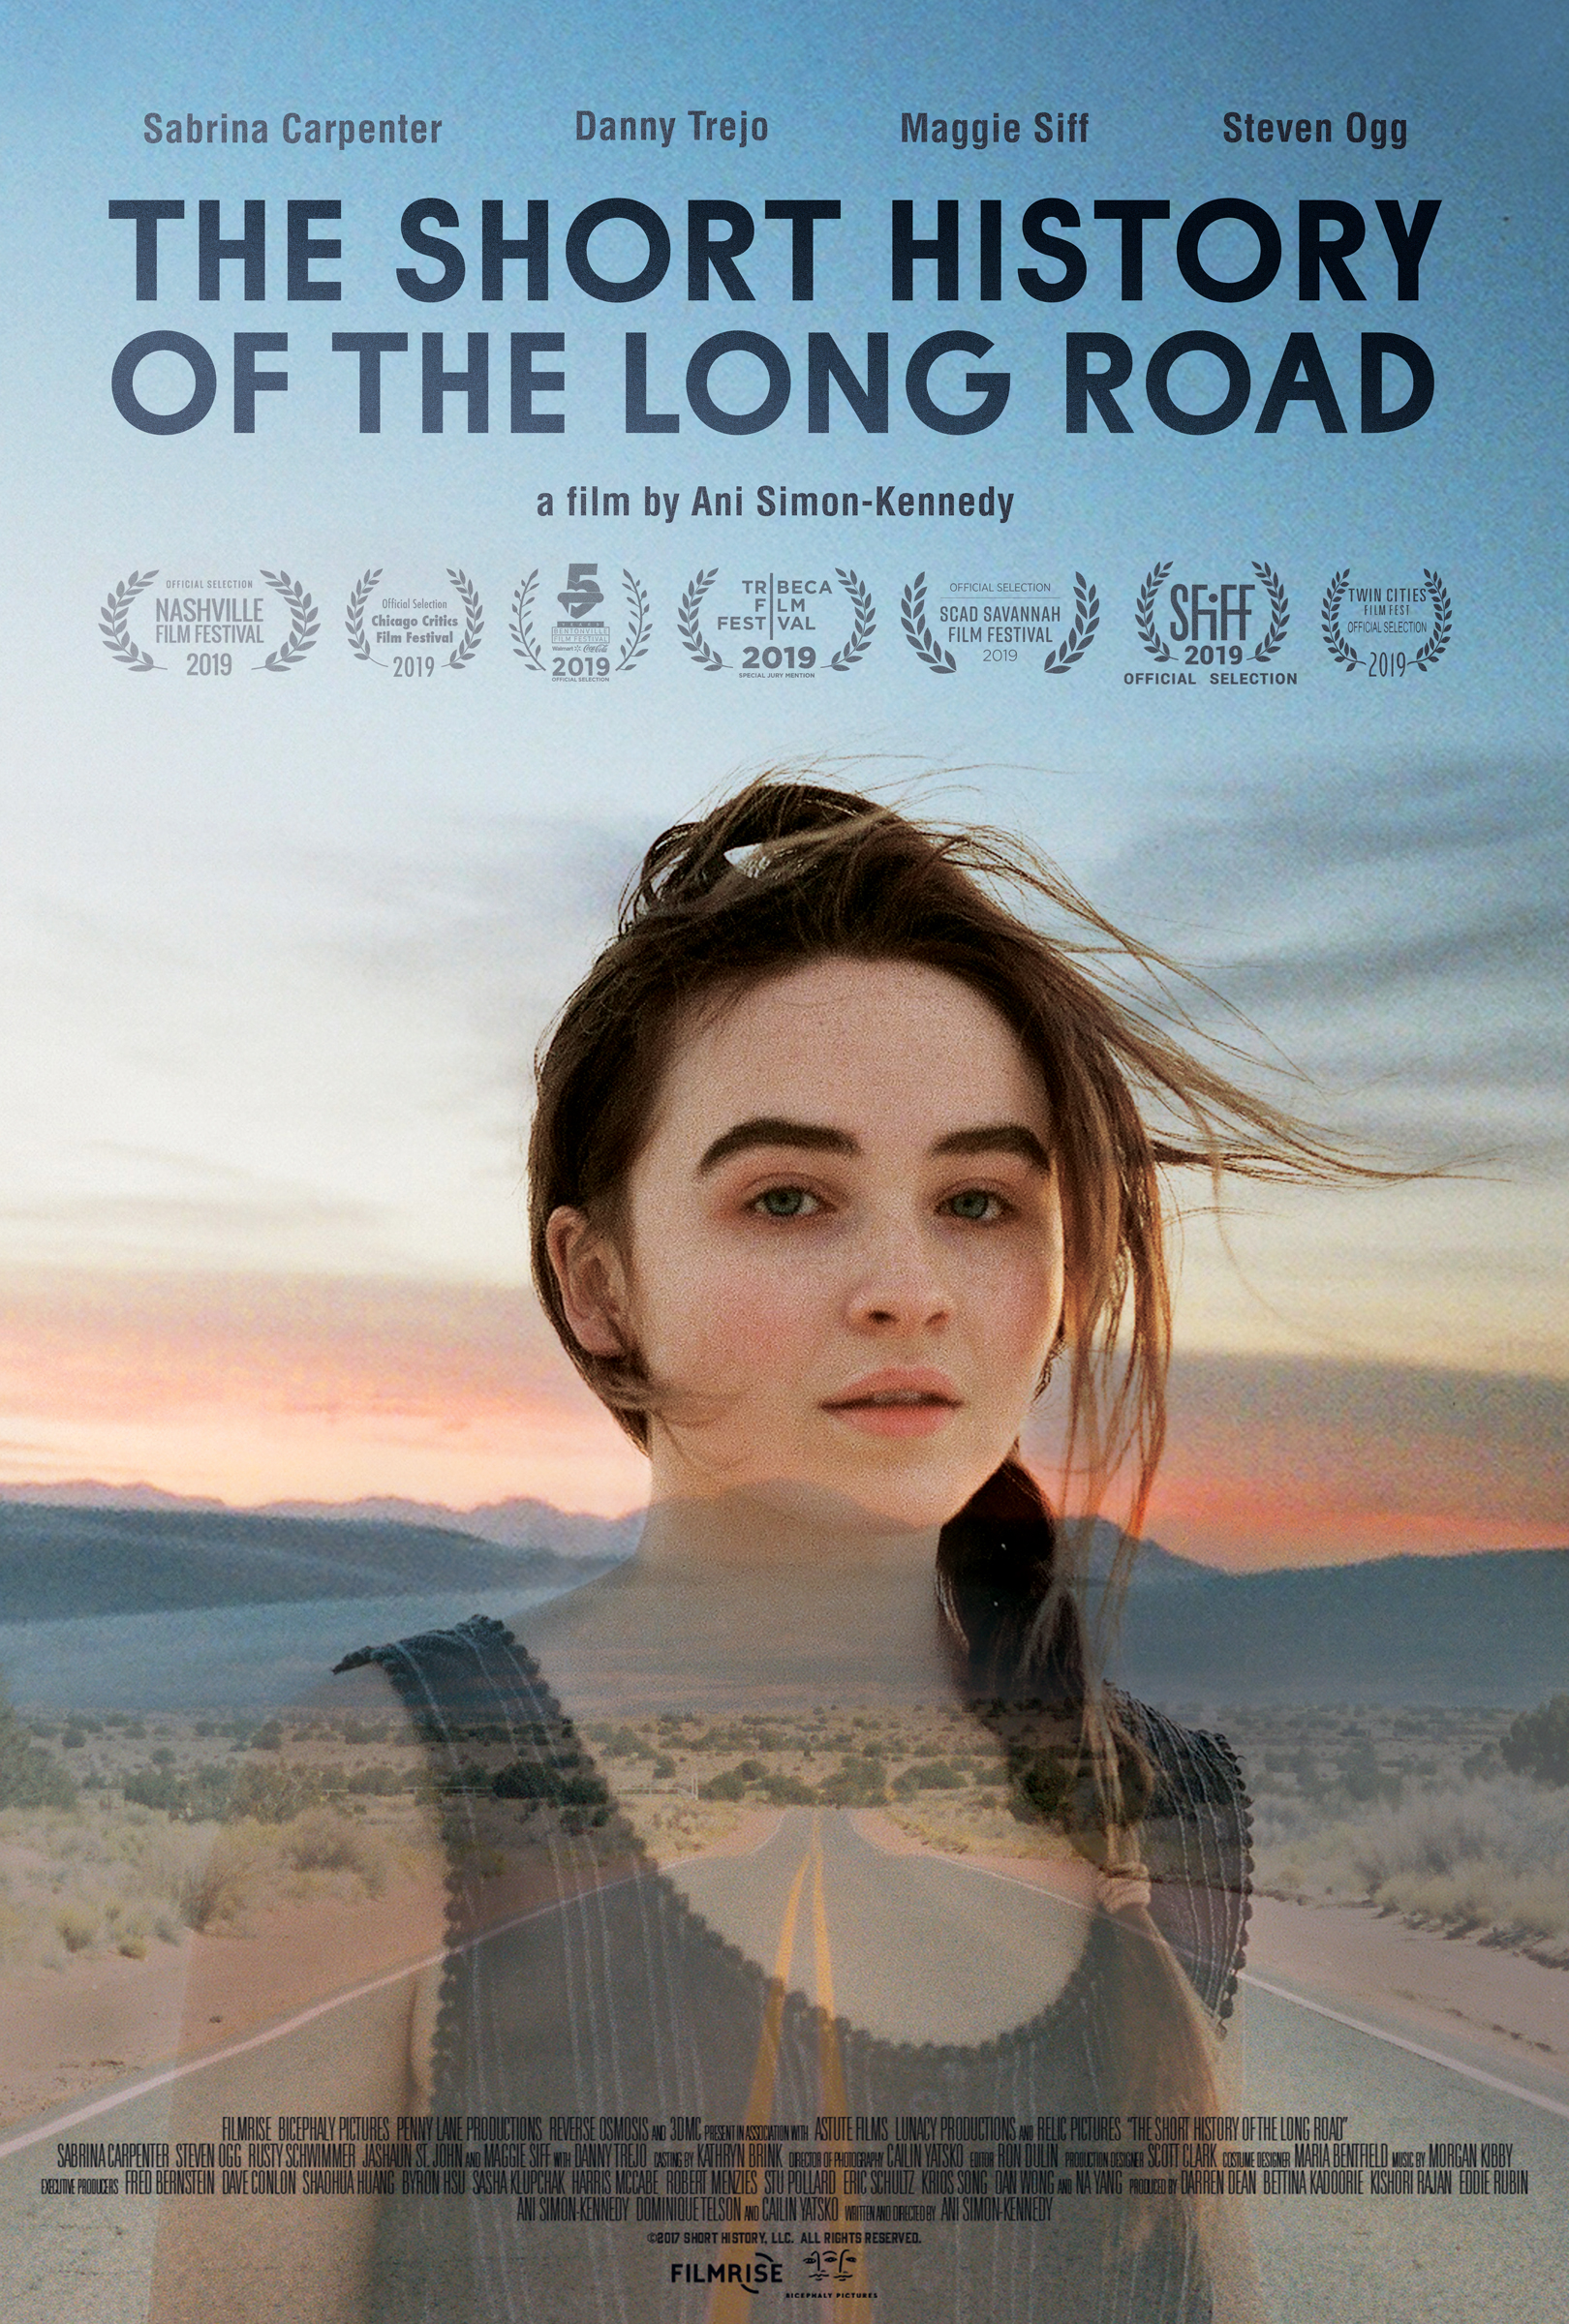 Stiahni si Filmy s titulkama     The Short History of the Long Road (2019)[WebRip][720p]